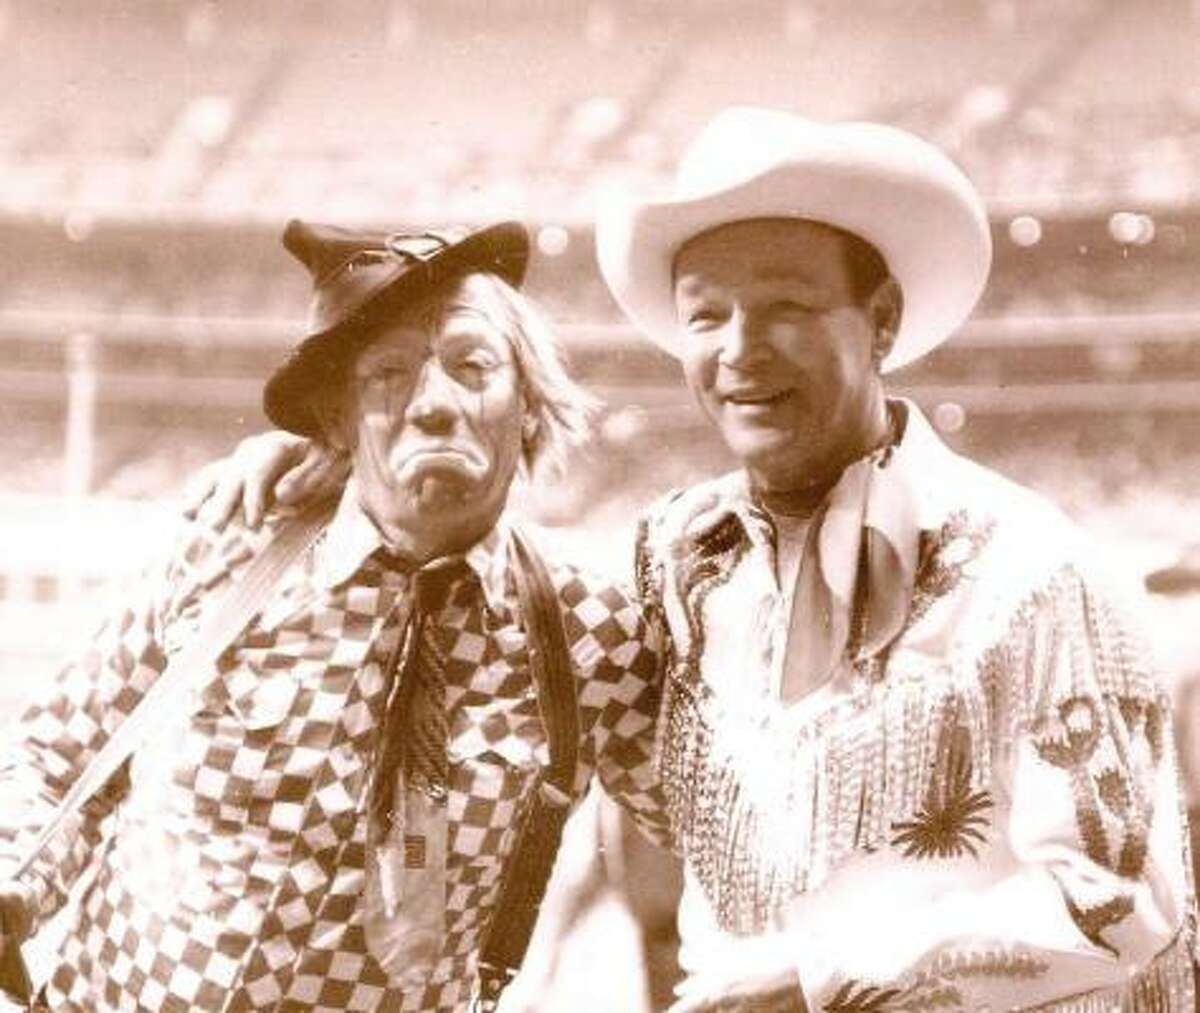 How far do the Astrodome and rodeo go back? Roy Rogers made an appearance there for the 1969 event.